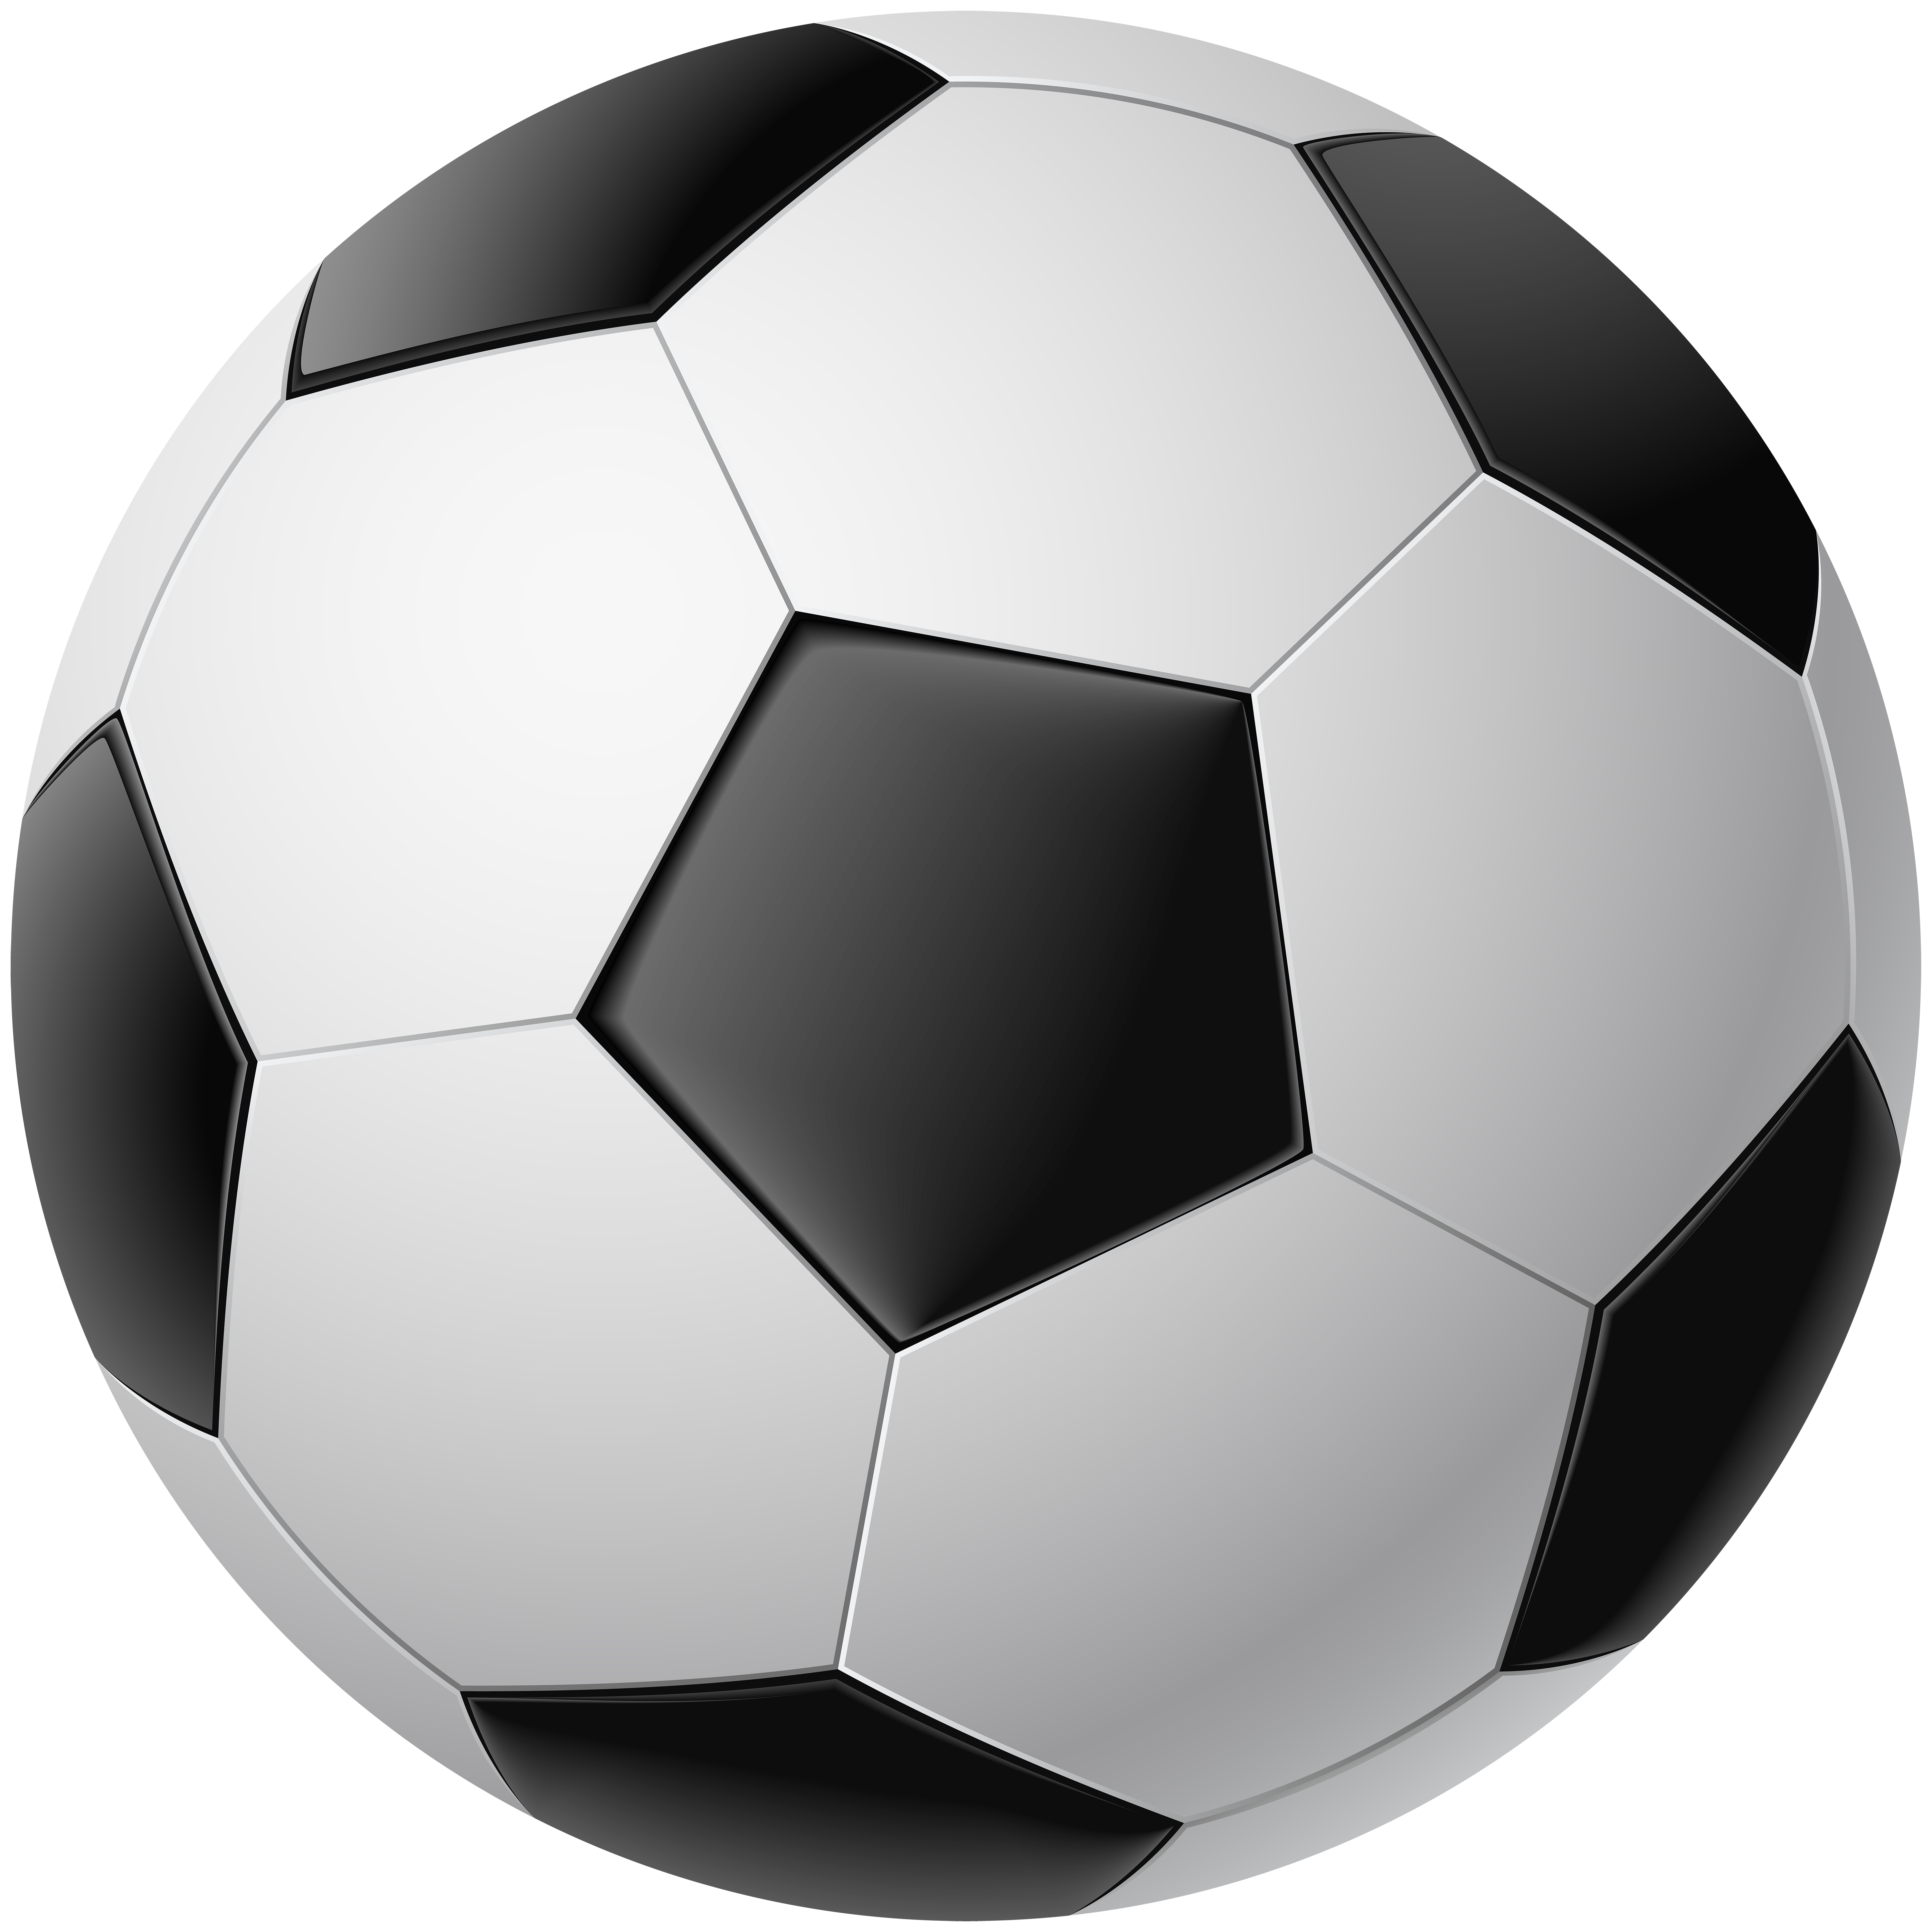 Soccer ball png file. Clip art image gallery